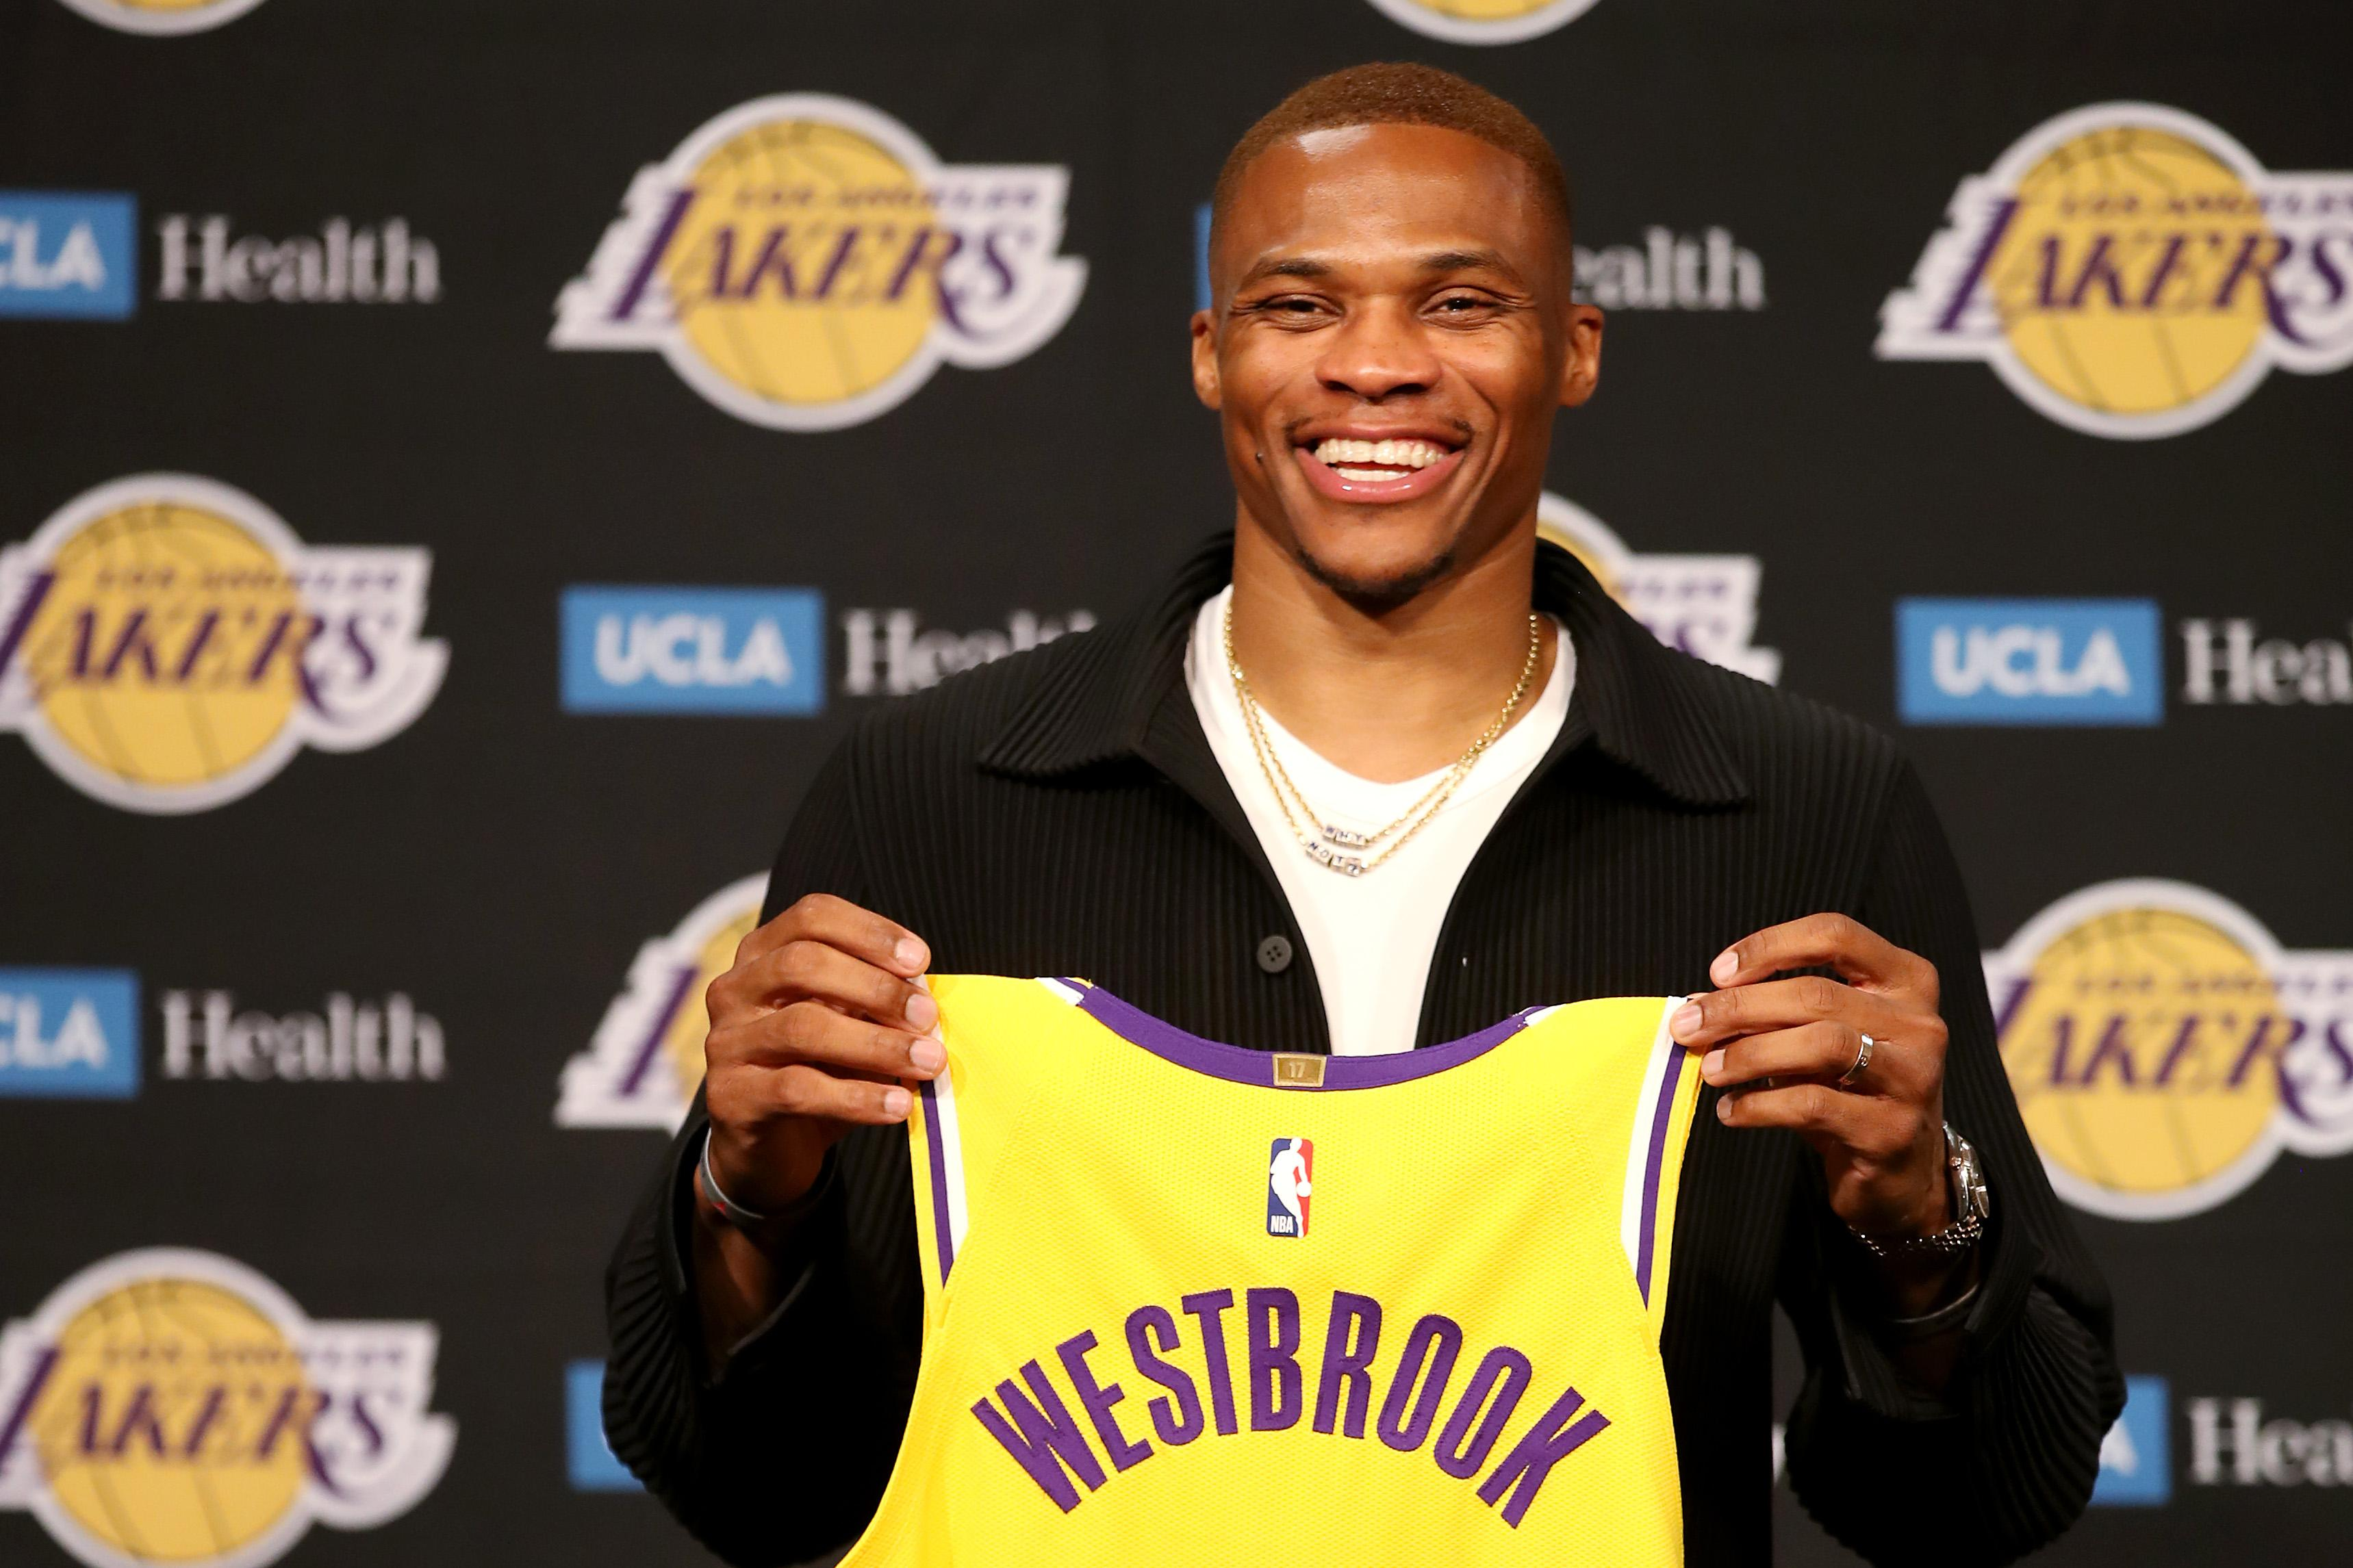 Russell Westbrook #0 of the Los Angeles Lakers